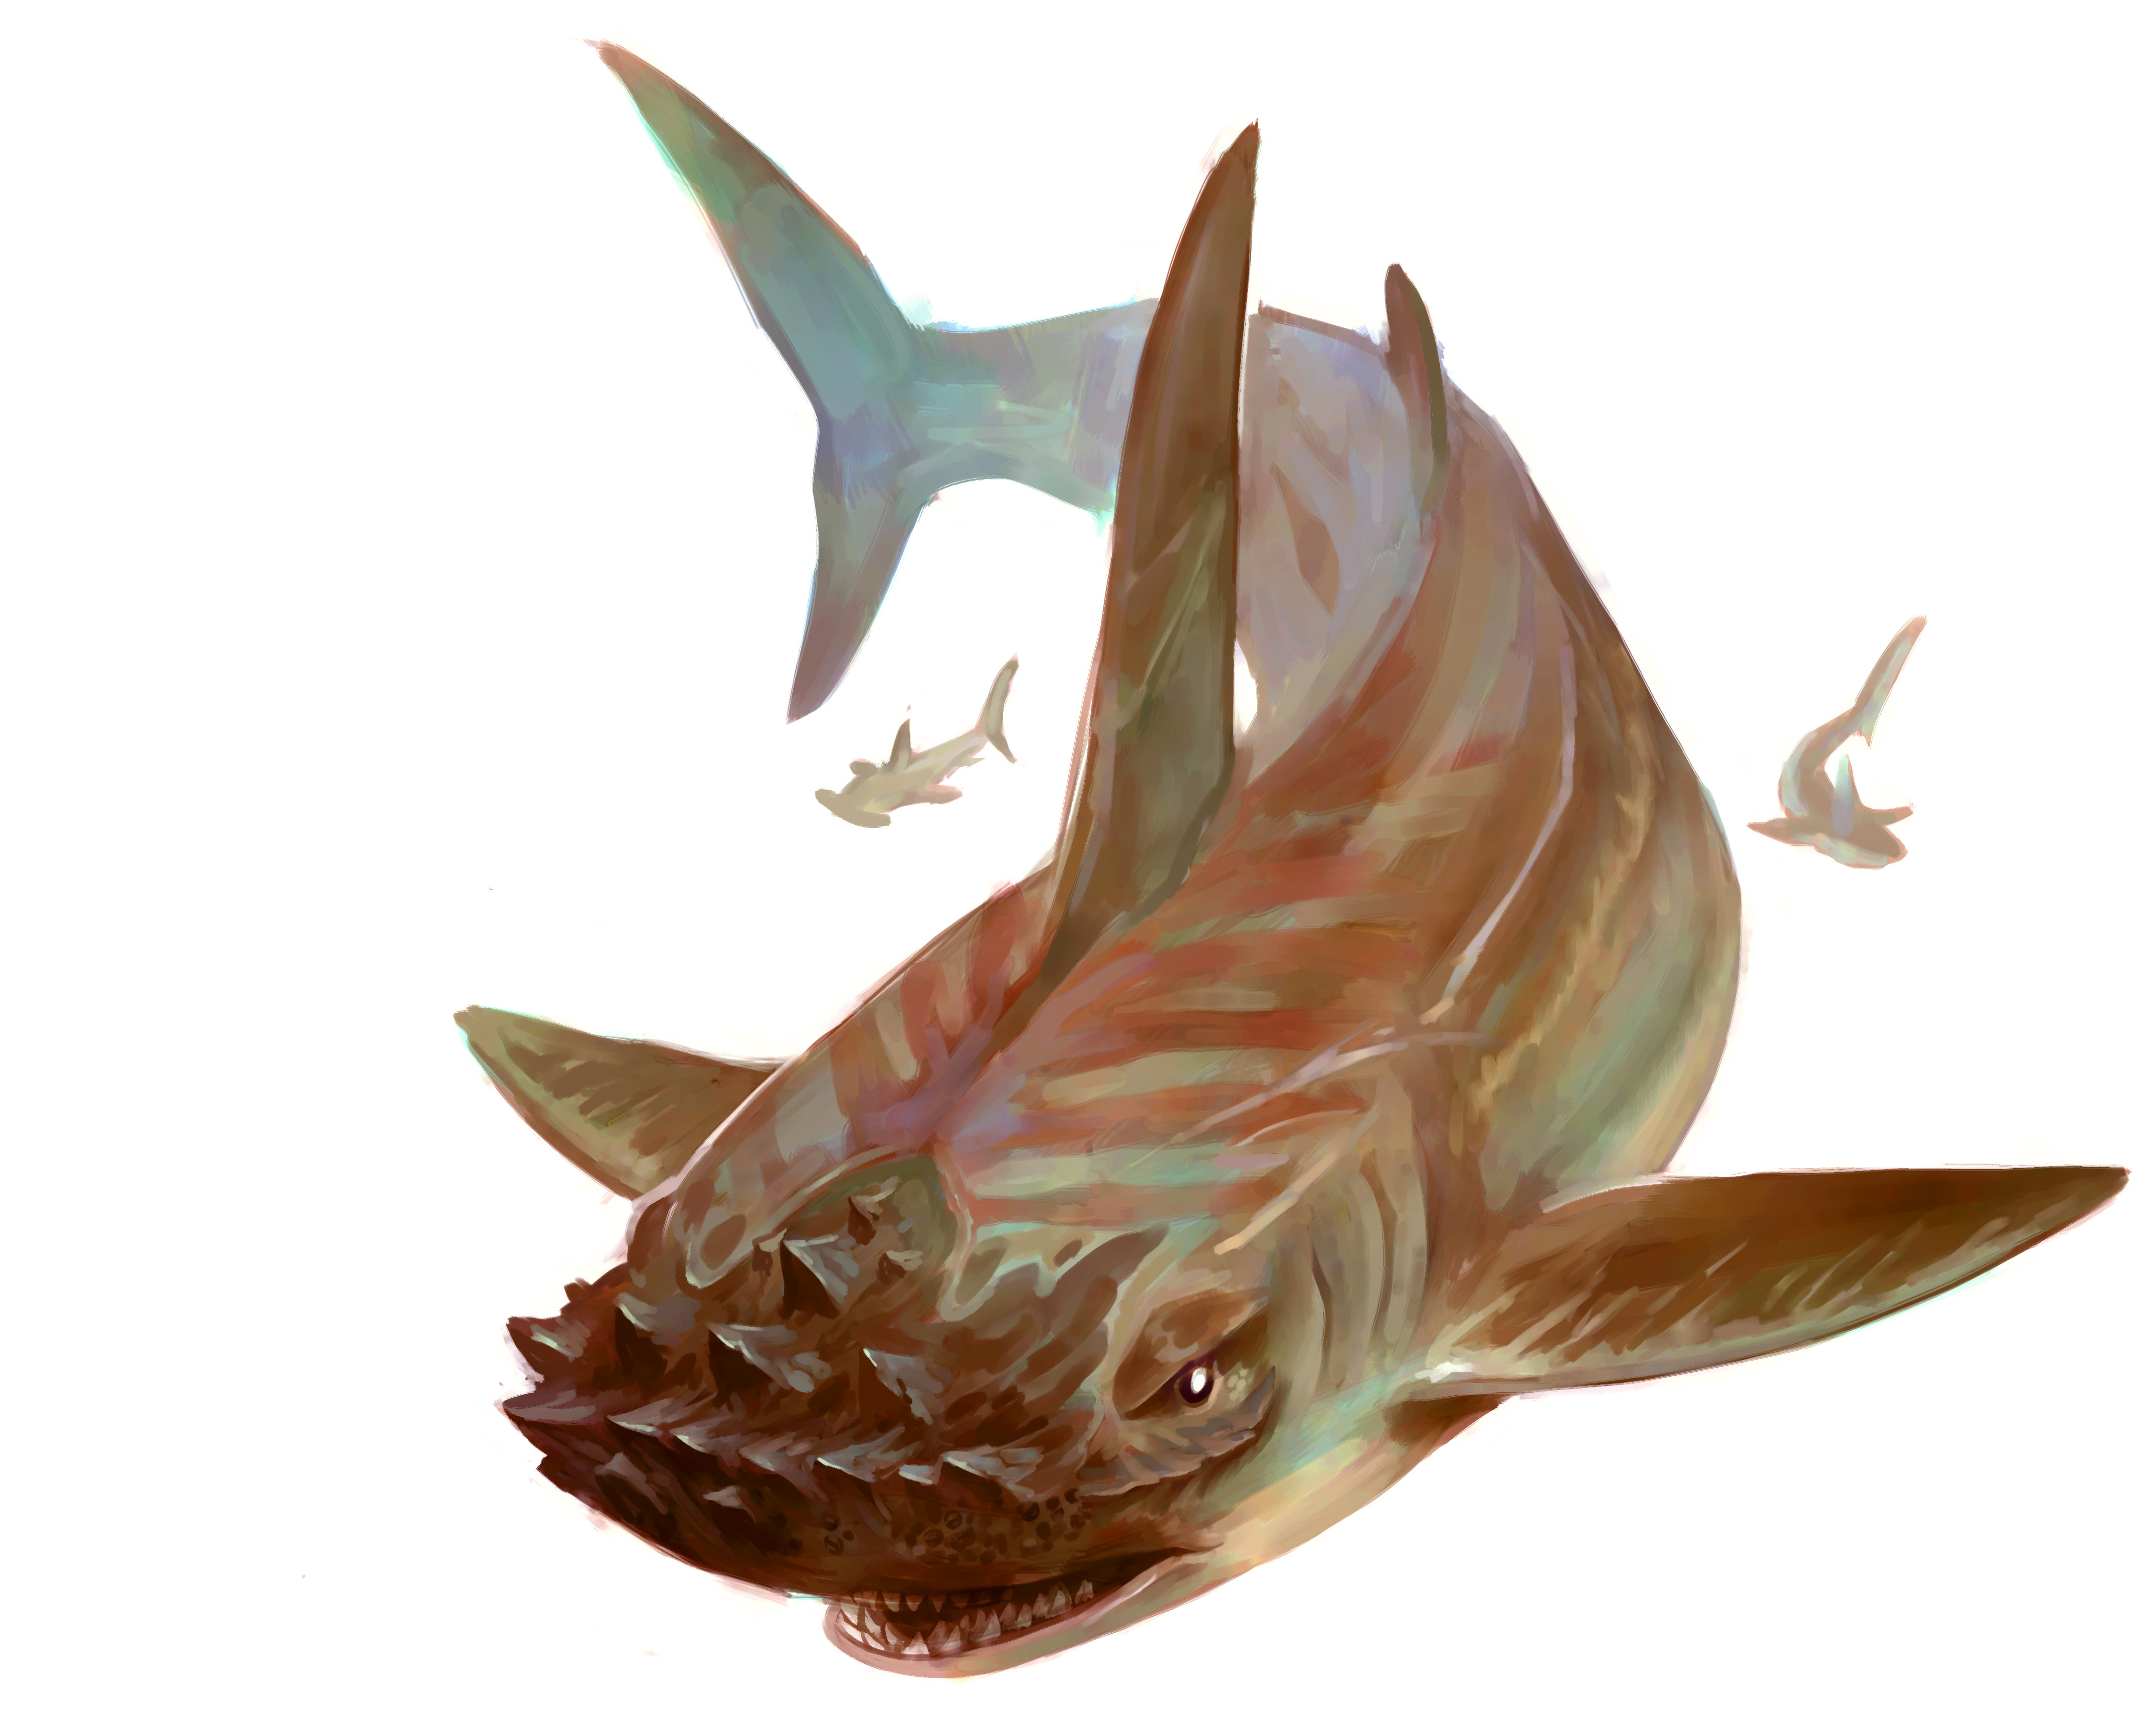 """stephen-wood """"Hull Breaker"""" - by Stephen Wood Dungeon Master's Guild """"Angler: a Ranger's Path"""" (2018-02) © Wizards of the Coast e dell'autore, tutti i diritti riservati"""